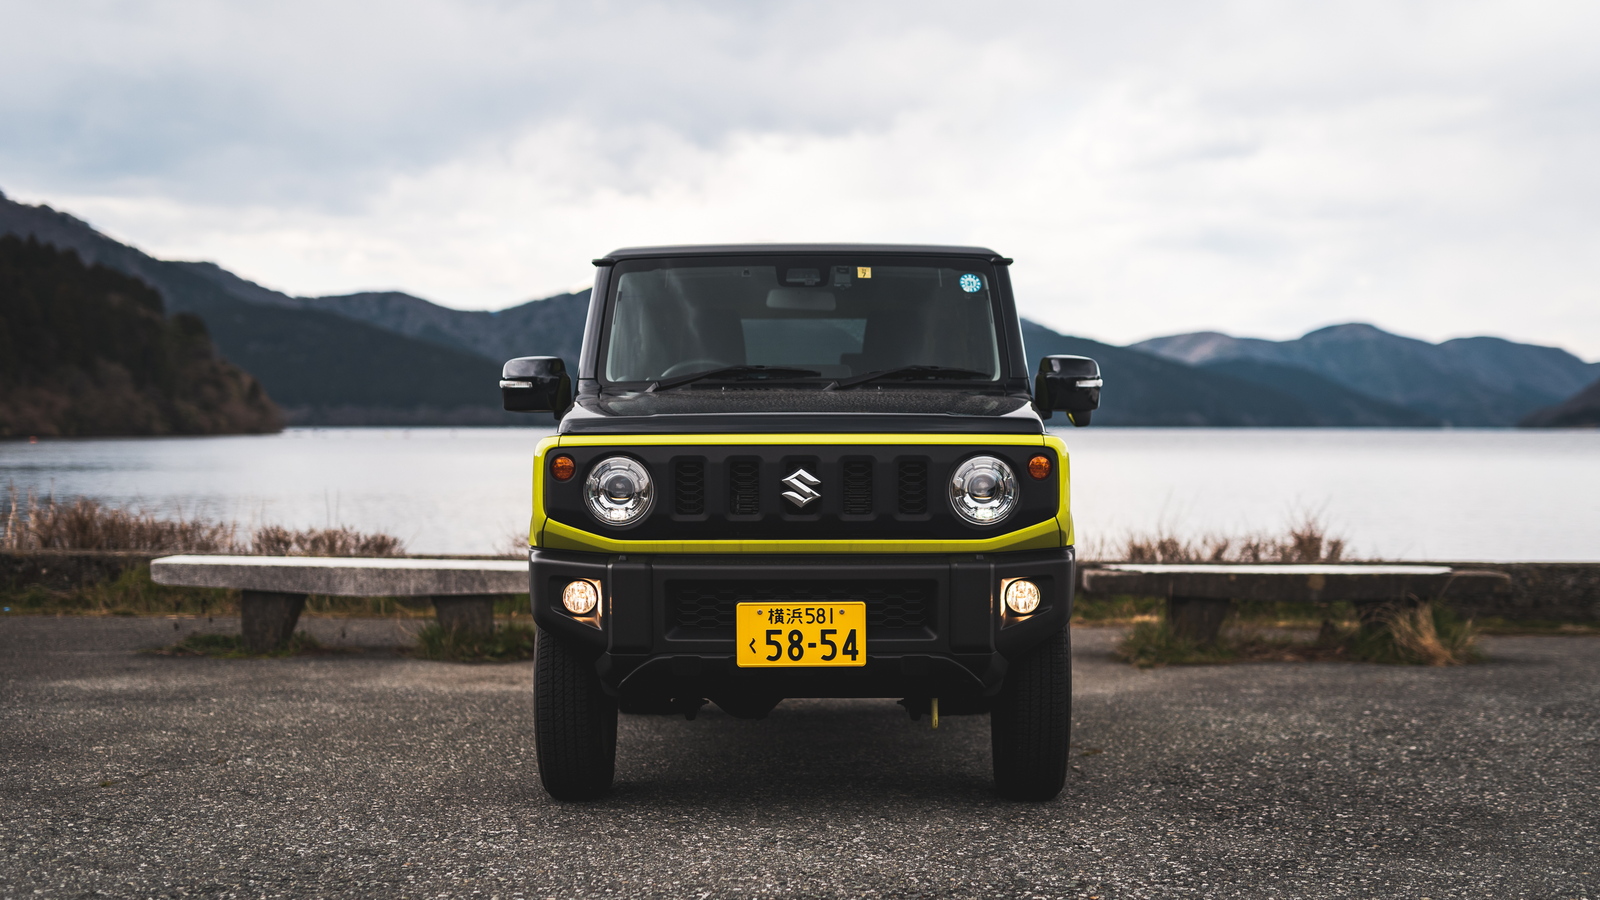 Illustration for article titled The 660cc 2019 Suzuki Jimny Isn't Perfect but Its Full of Charm